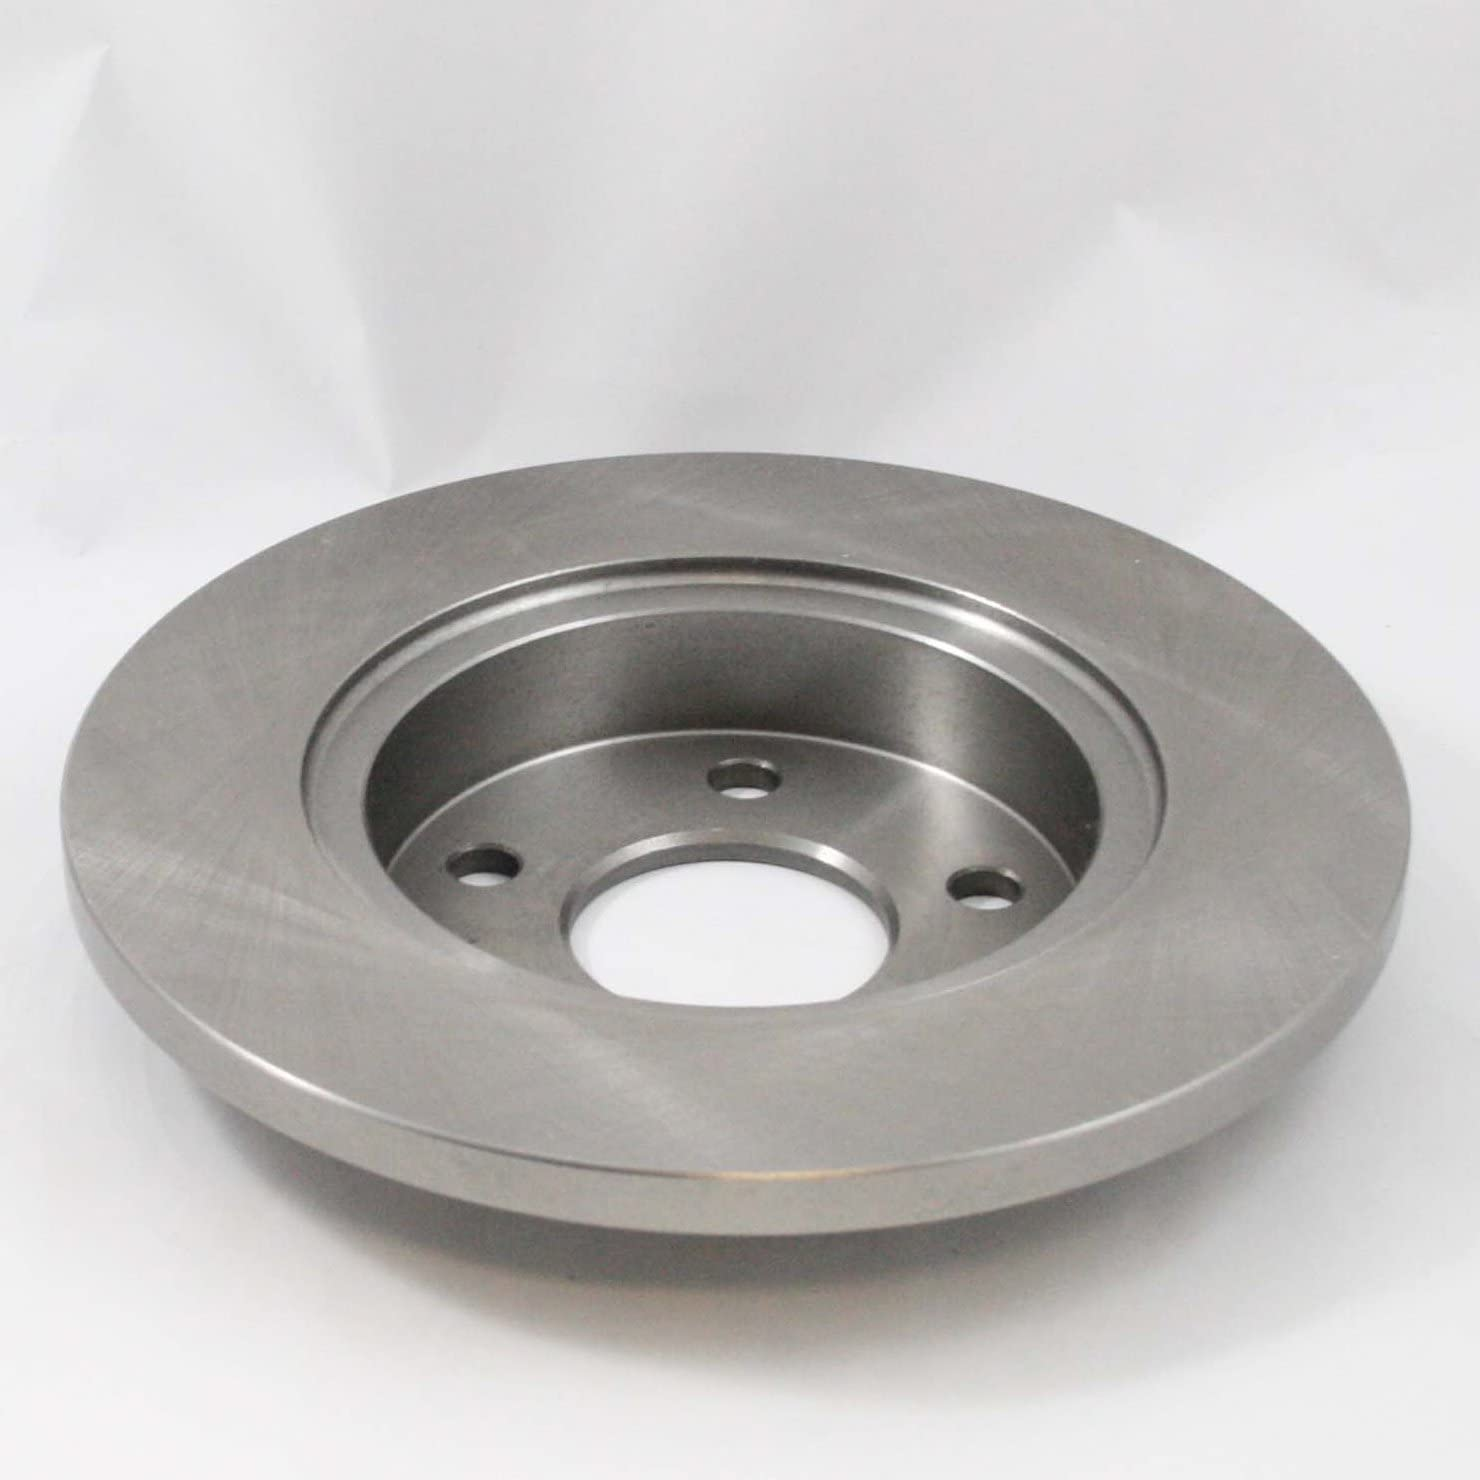 Raybestos 580243FZN Rust Prevention Technology Coated Rotor Brake